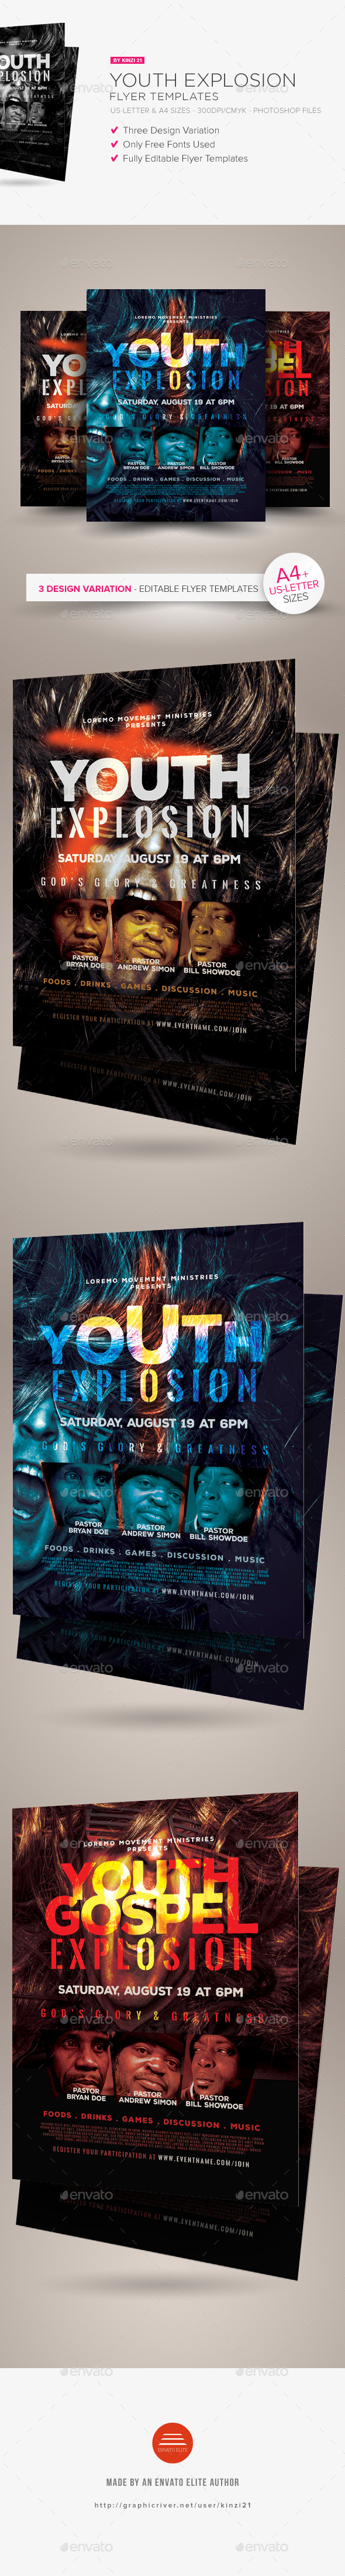 Youth Explosion Flyer Templates - Church Flyers